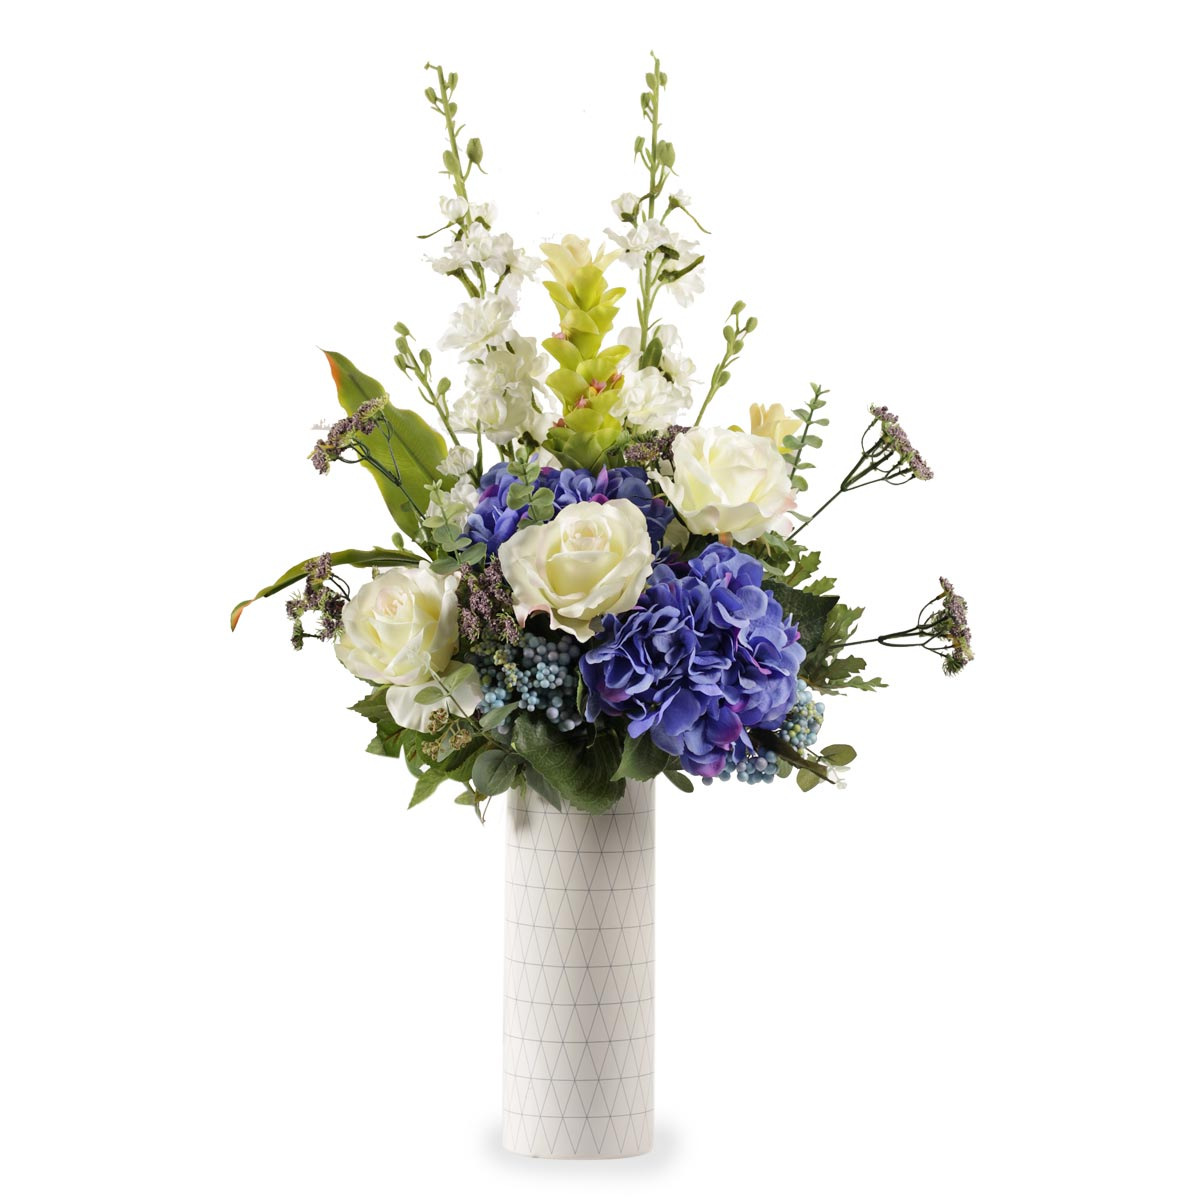 EB1669 Harmonious Life artificial arrangement